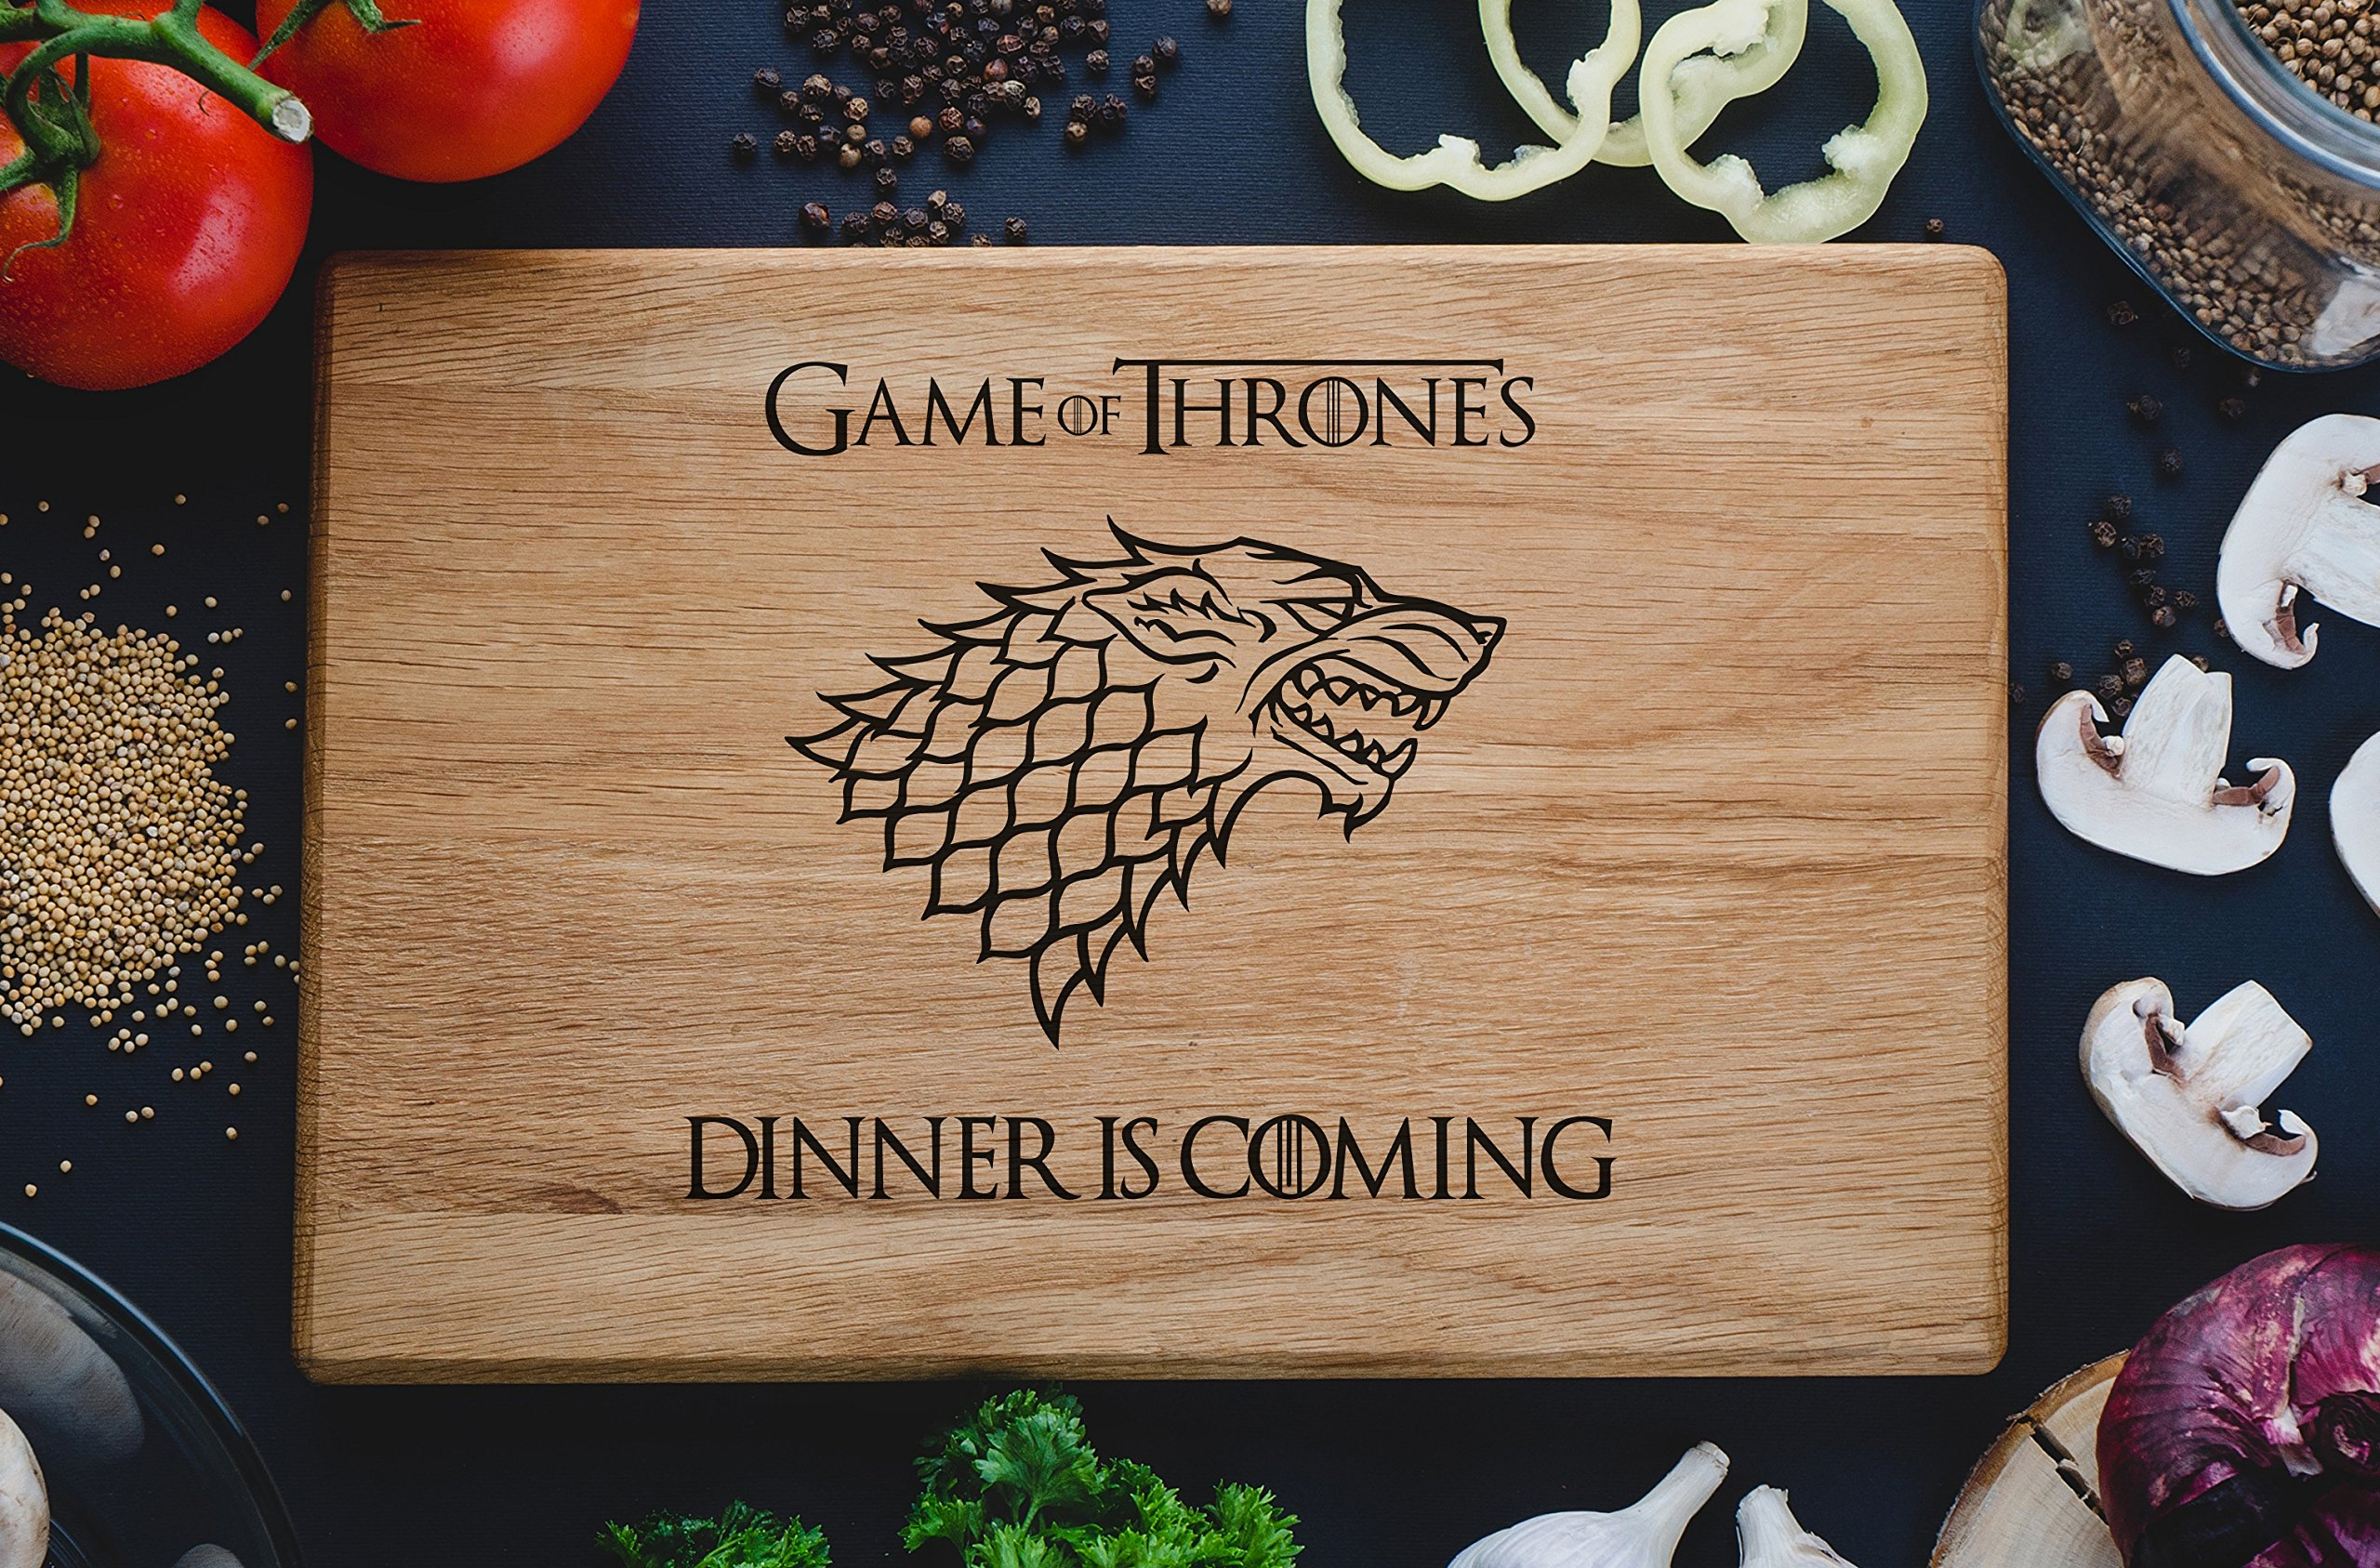 Game of Throne Cutting Board Stark family Dinner is coming Winter Custom Engraved Wooden Men Christmas Gift for Friend Him Her House Warming (8 x 12 inch) game10